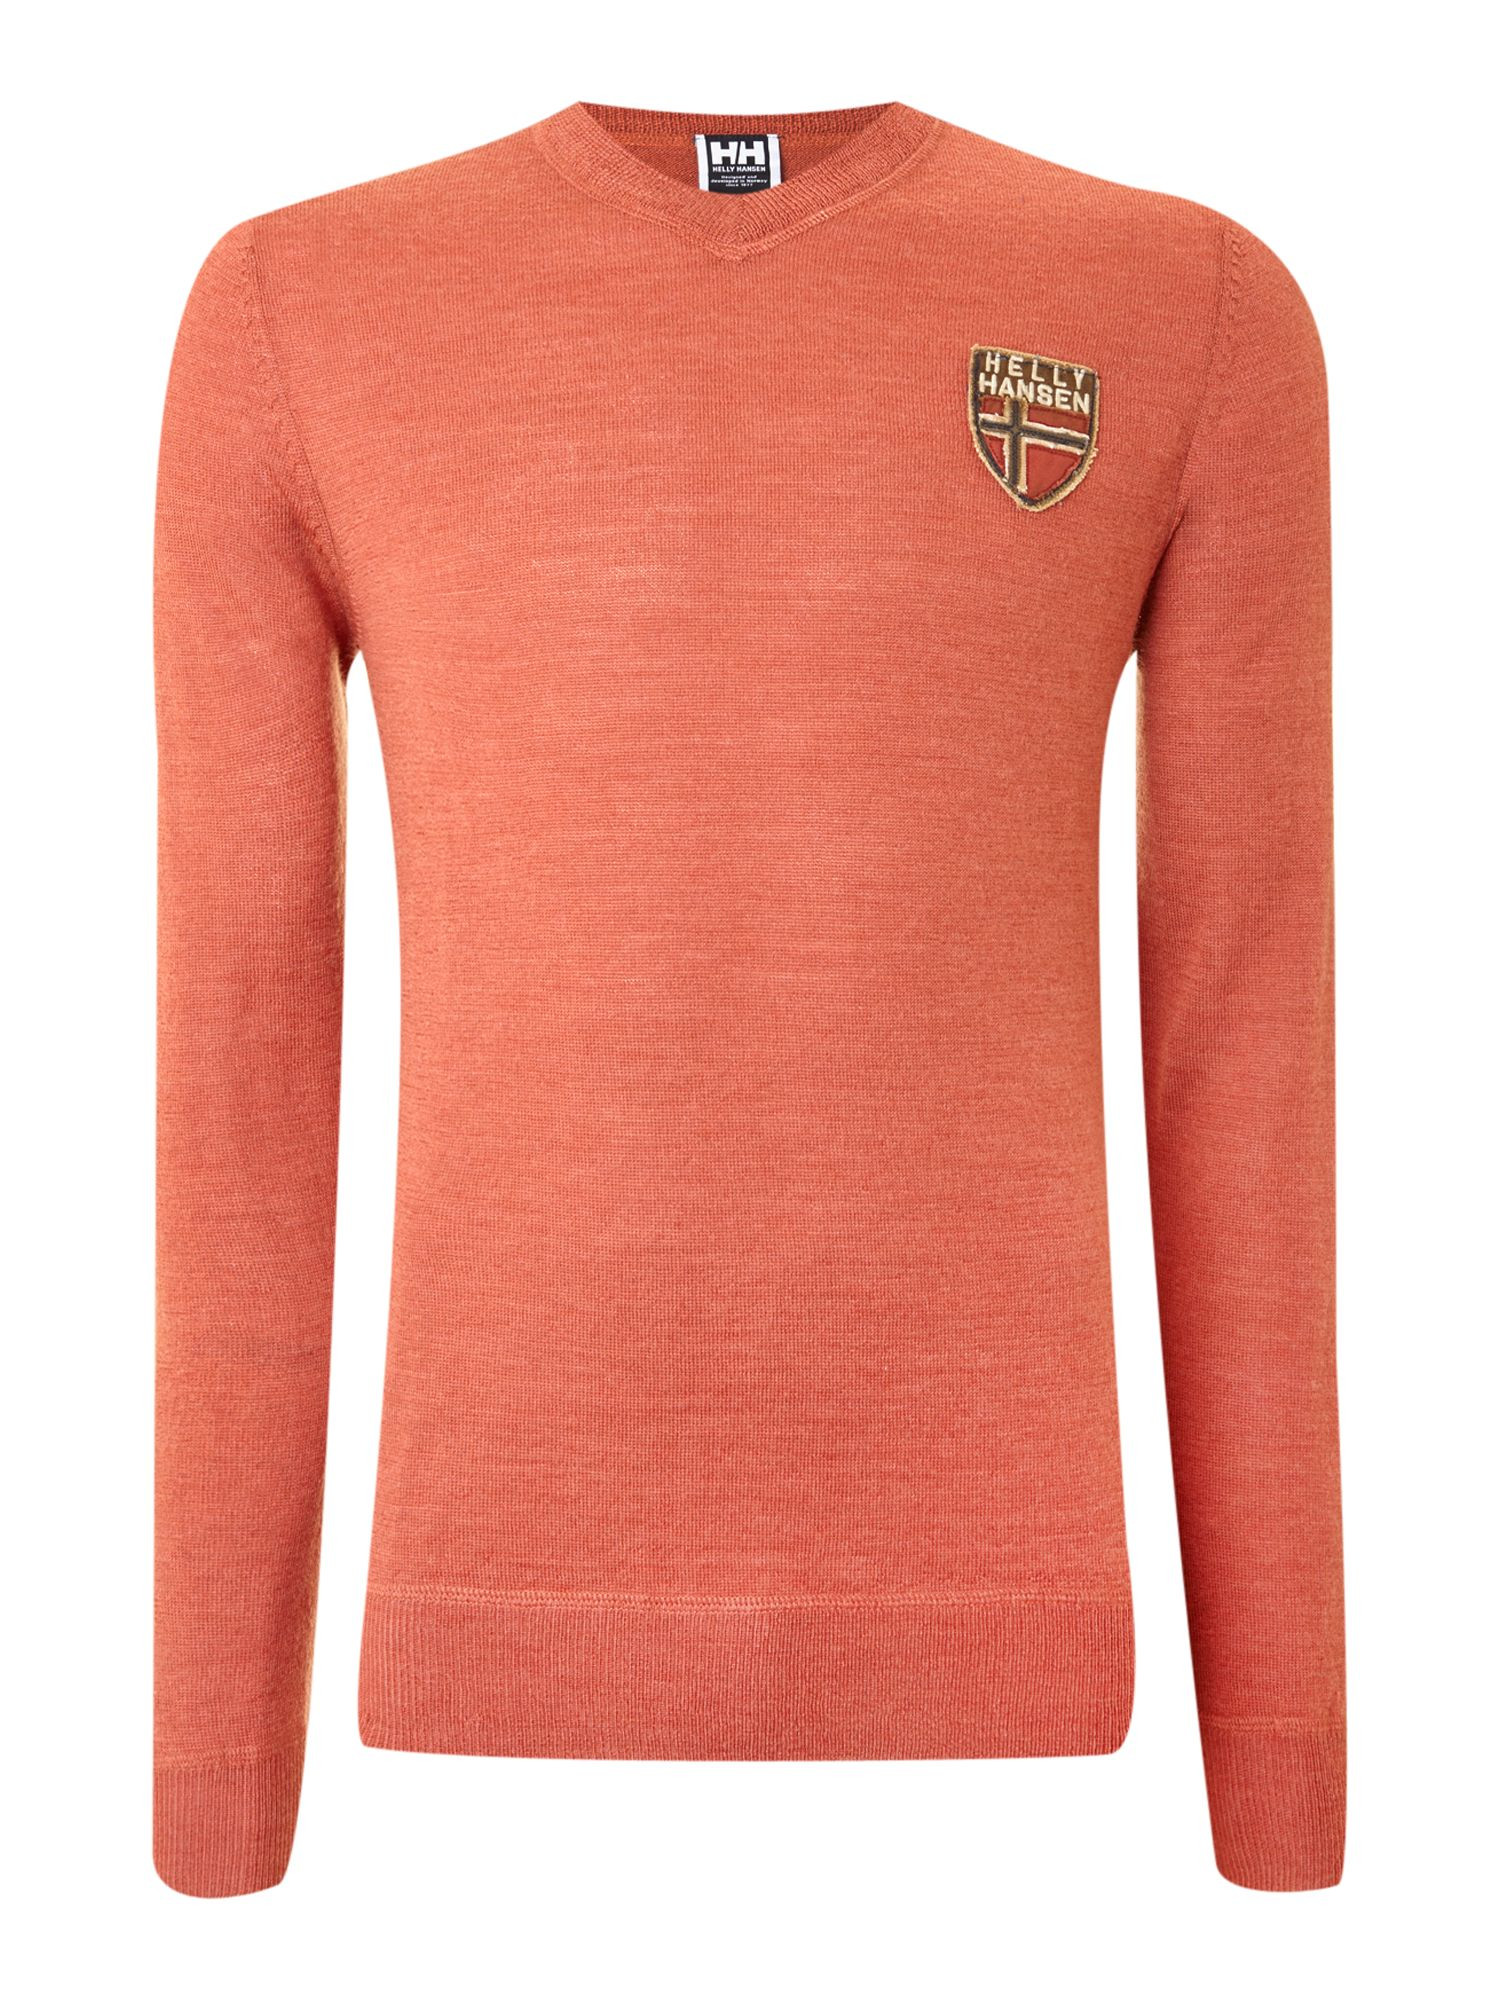 Skagerak v-neck sweater